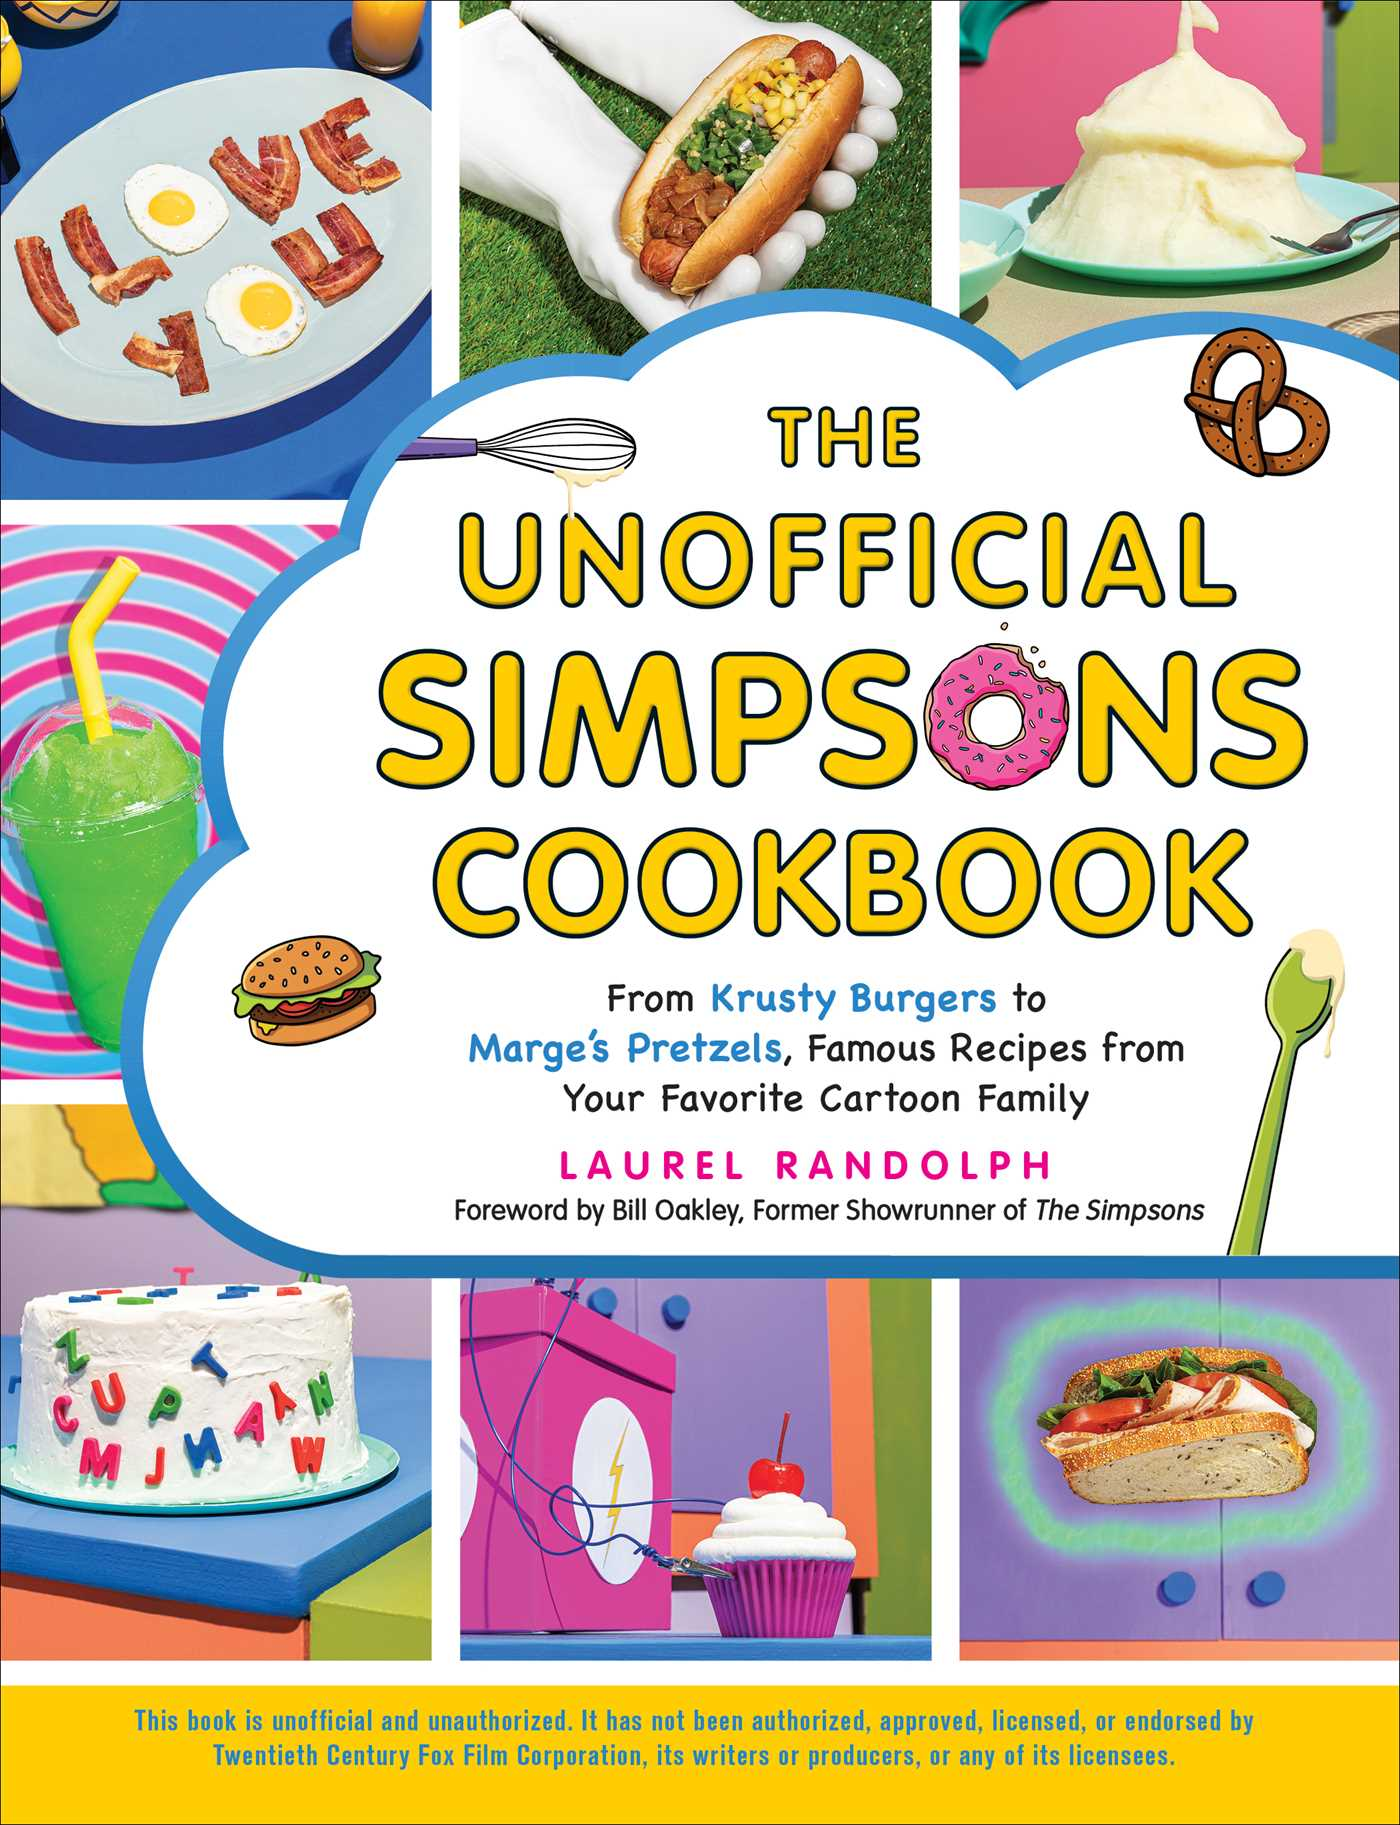 Laurel Randolph, The Unofficial Simpsons Cookbook: From Krusty Burgers to Marge's Pretzels, Famous Recipes from Your Favorite Cartoon Family, Cooking, Baking, Cookbook, Non-Fiction, Simpsons,